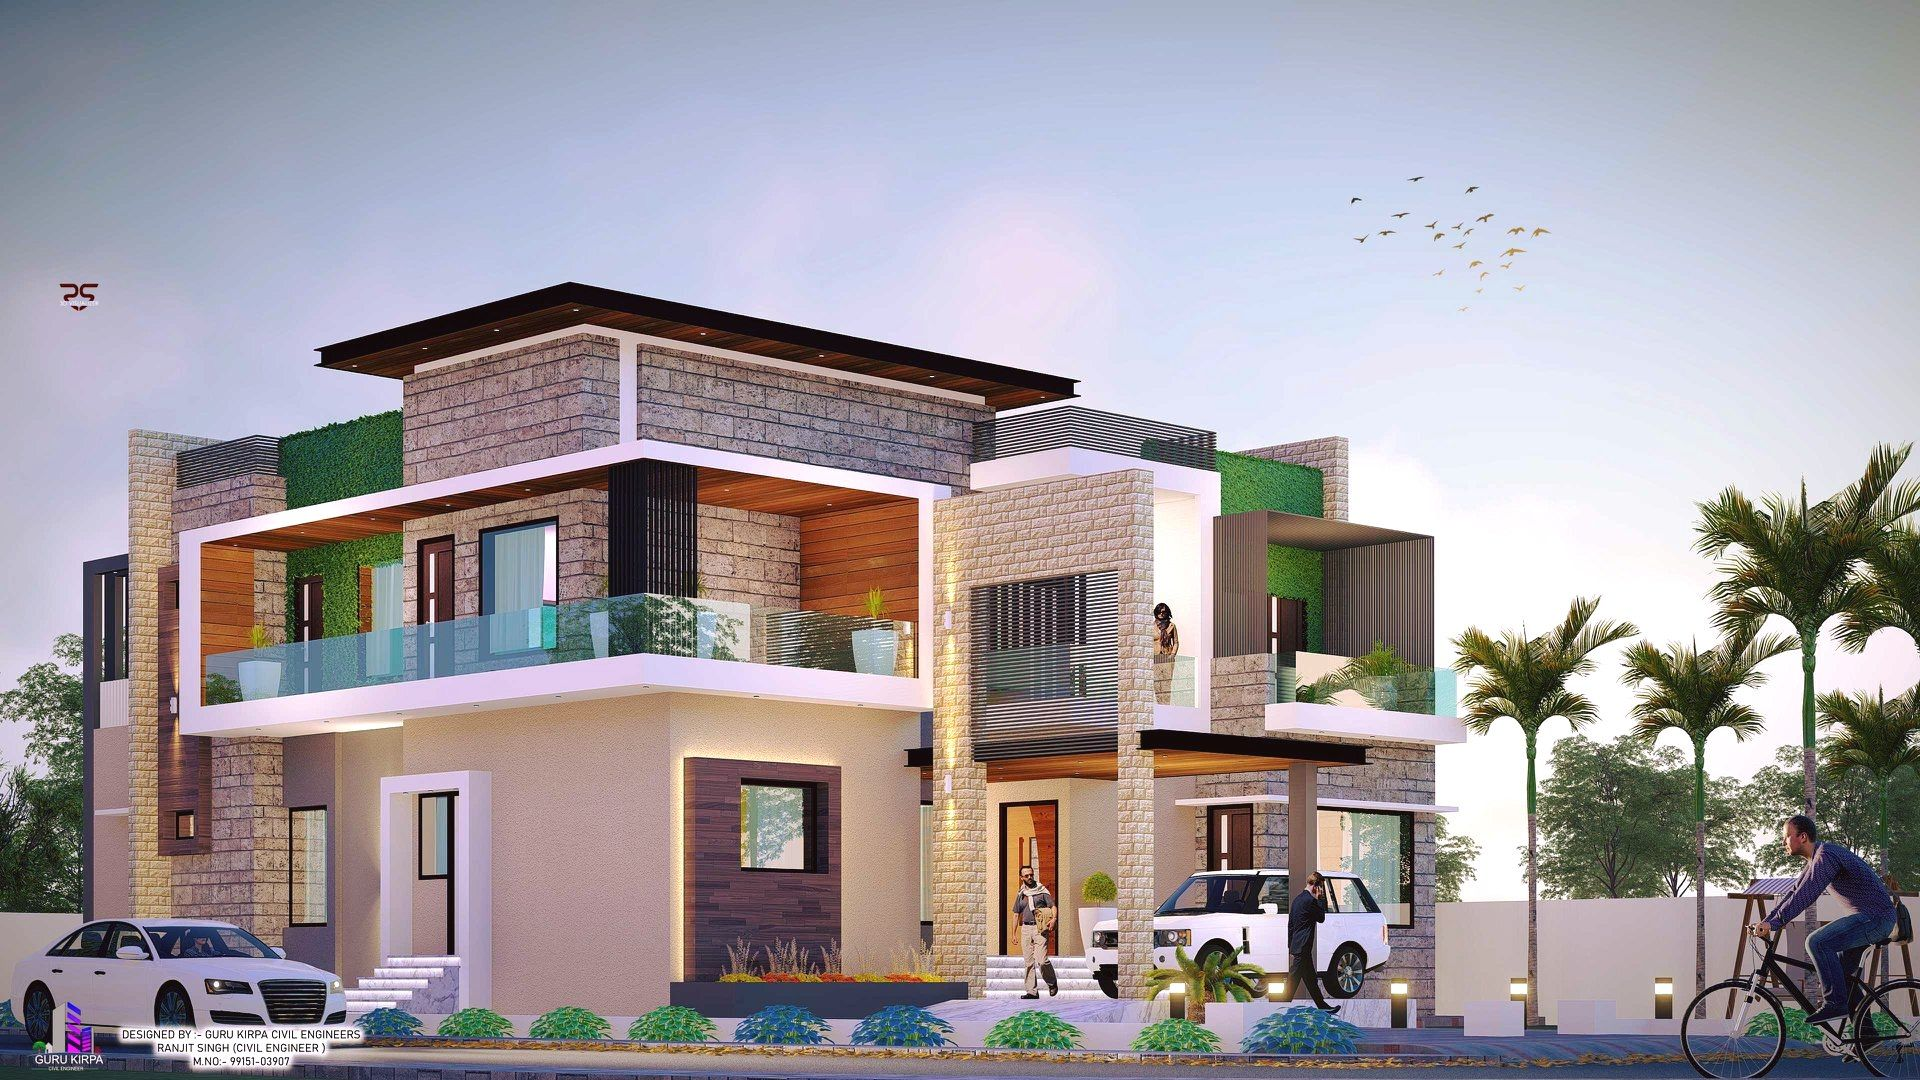 20 Marla Area Latest House Design In 2020 Best Small House Designs Latest House Designs Small House Design,Reunion Tshirt Design